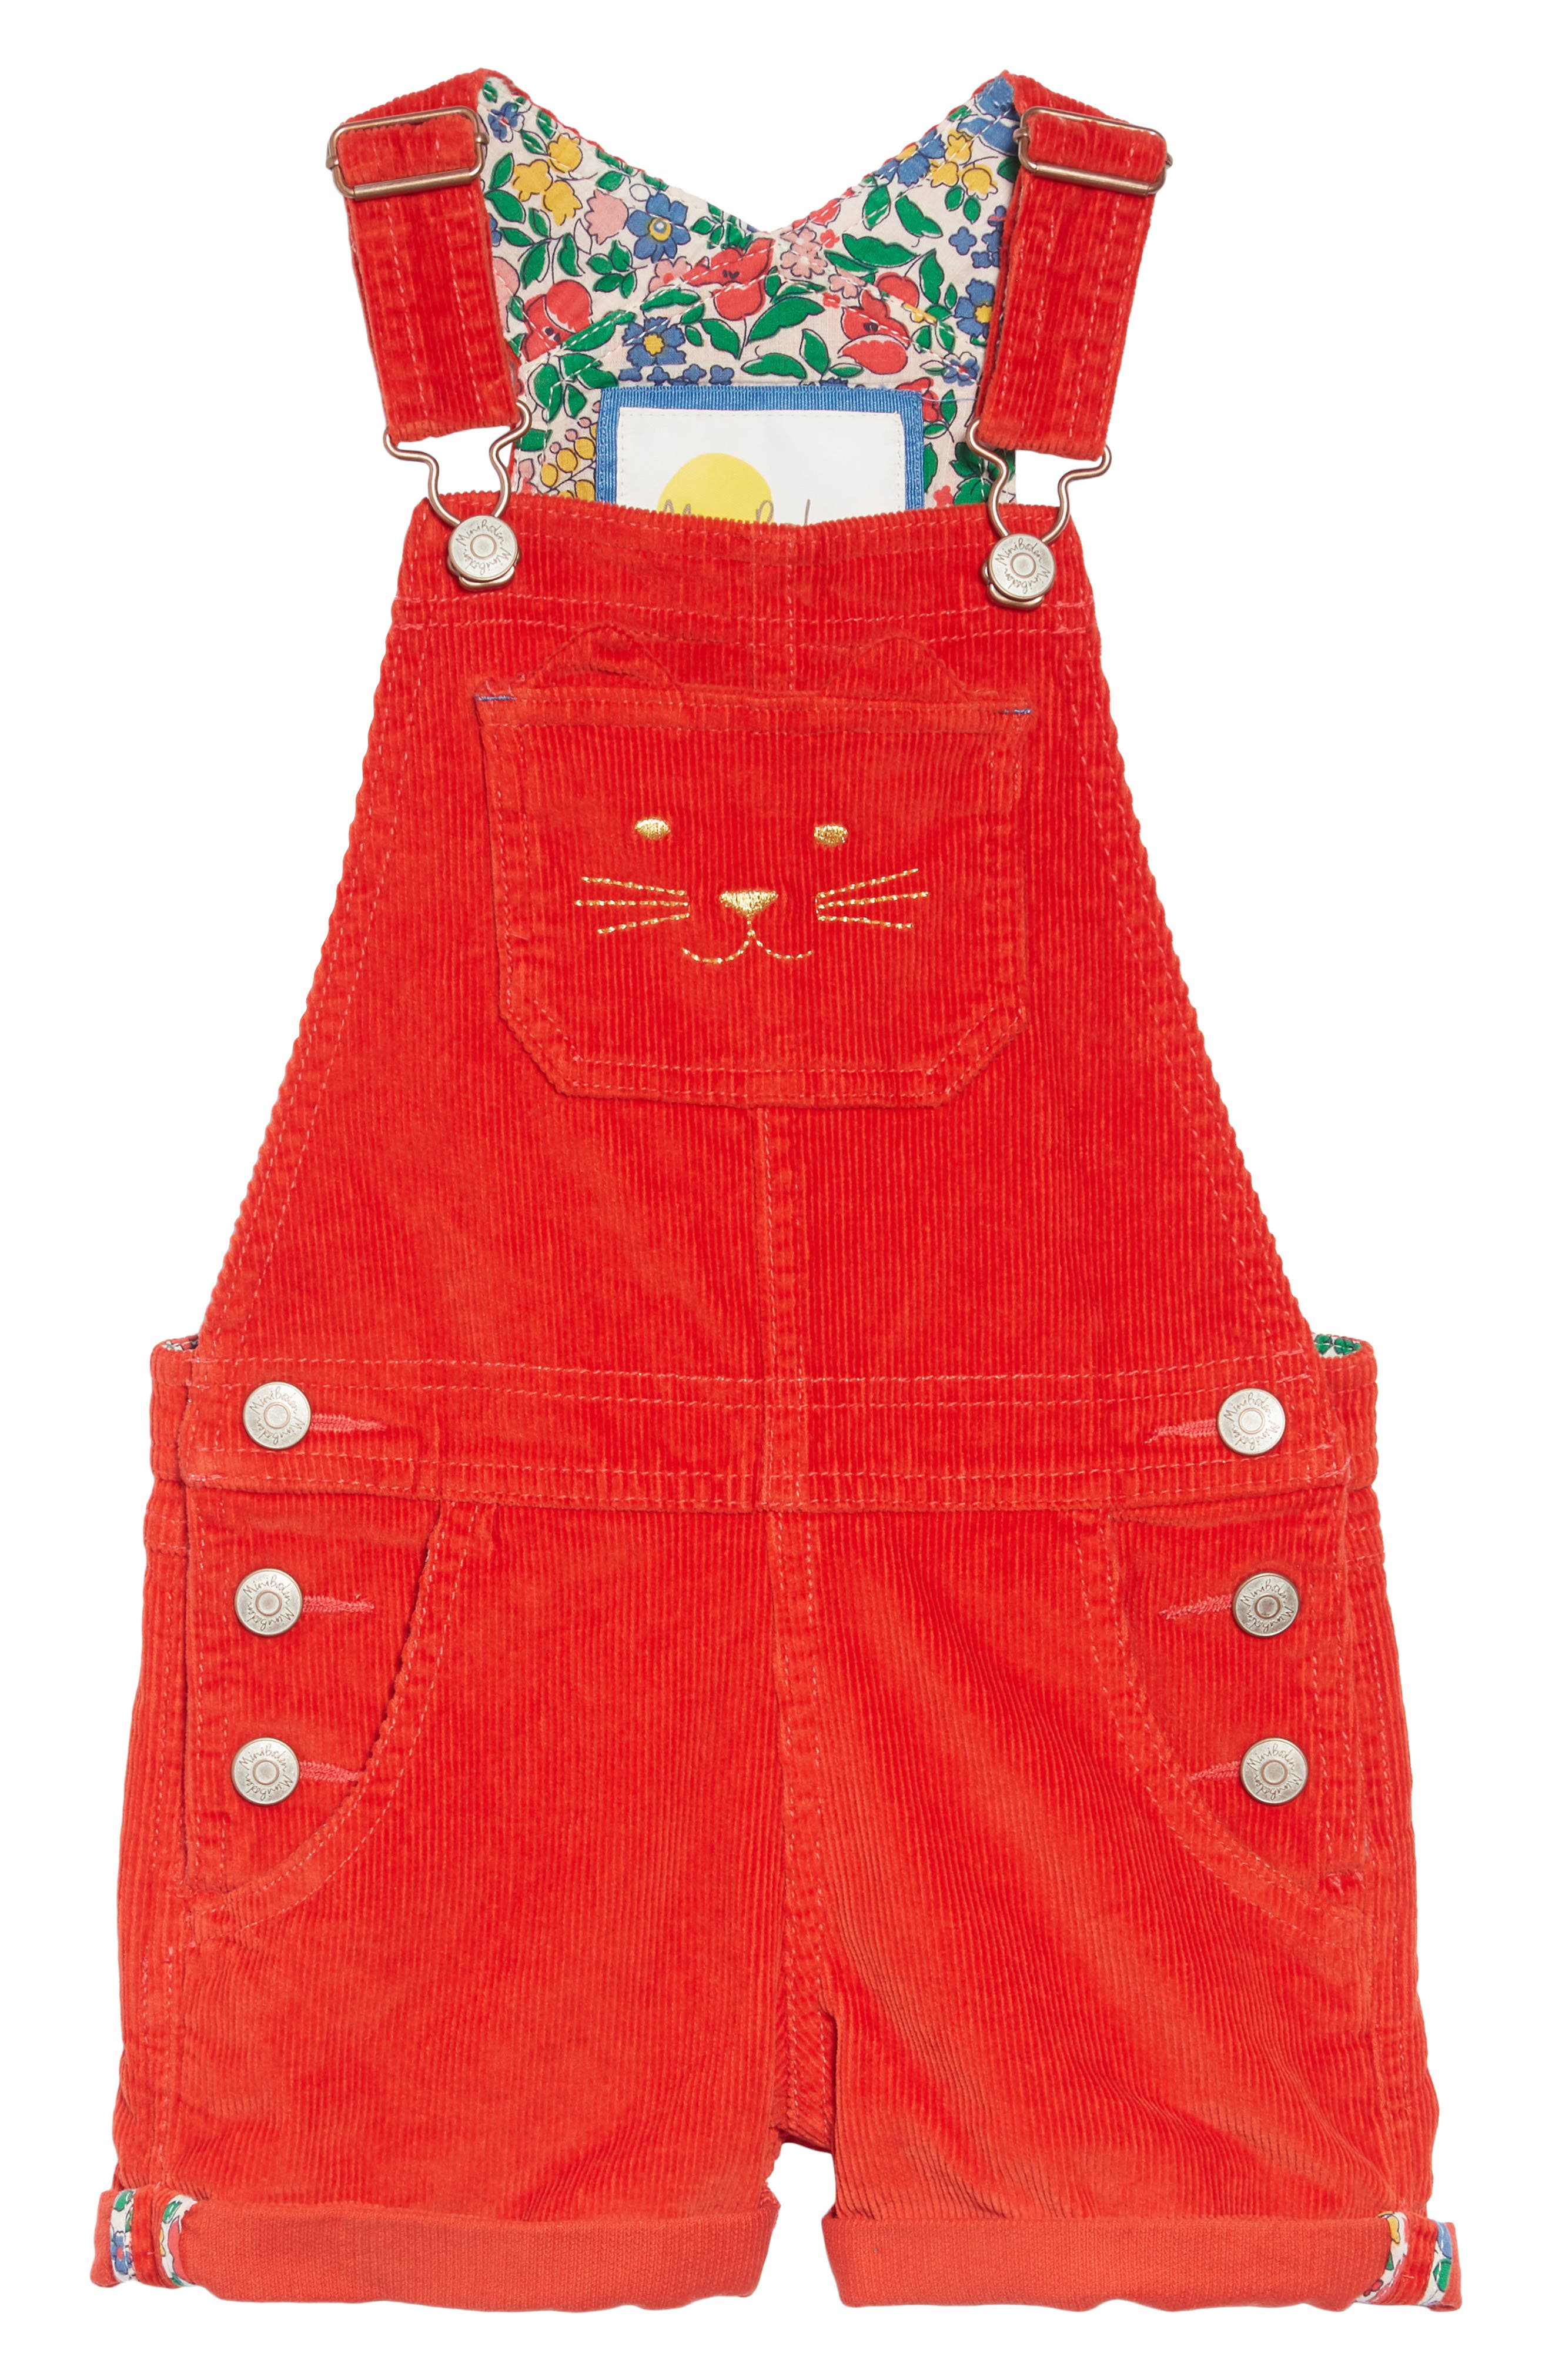 Toddler Girls Mini Boden Dungarees Short Overalls Size 34Y  Red